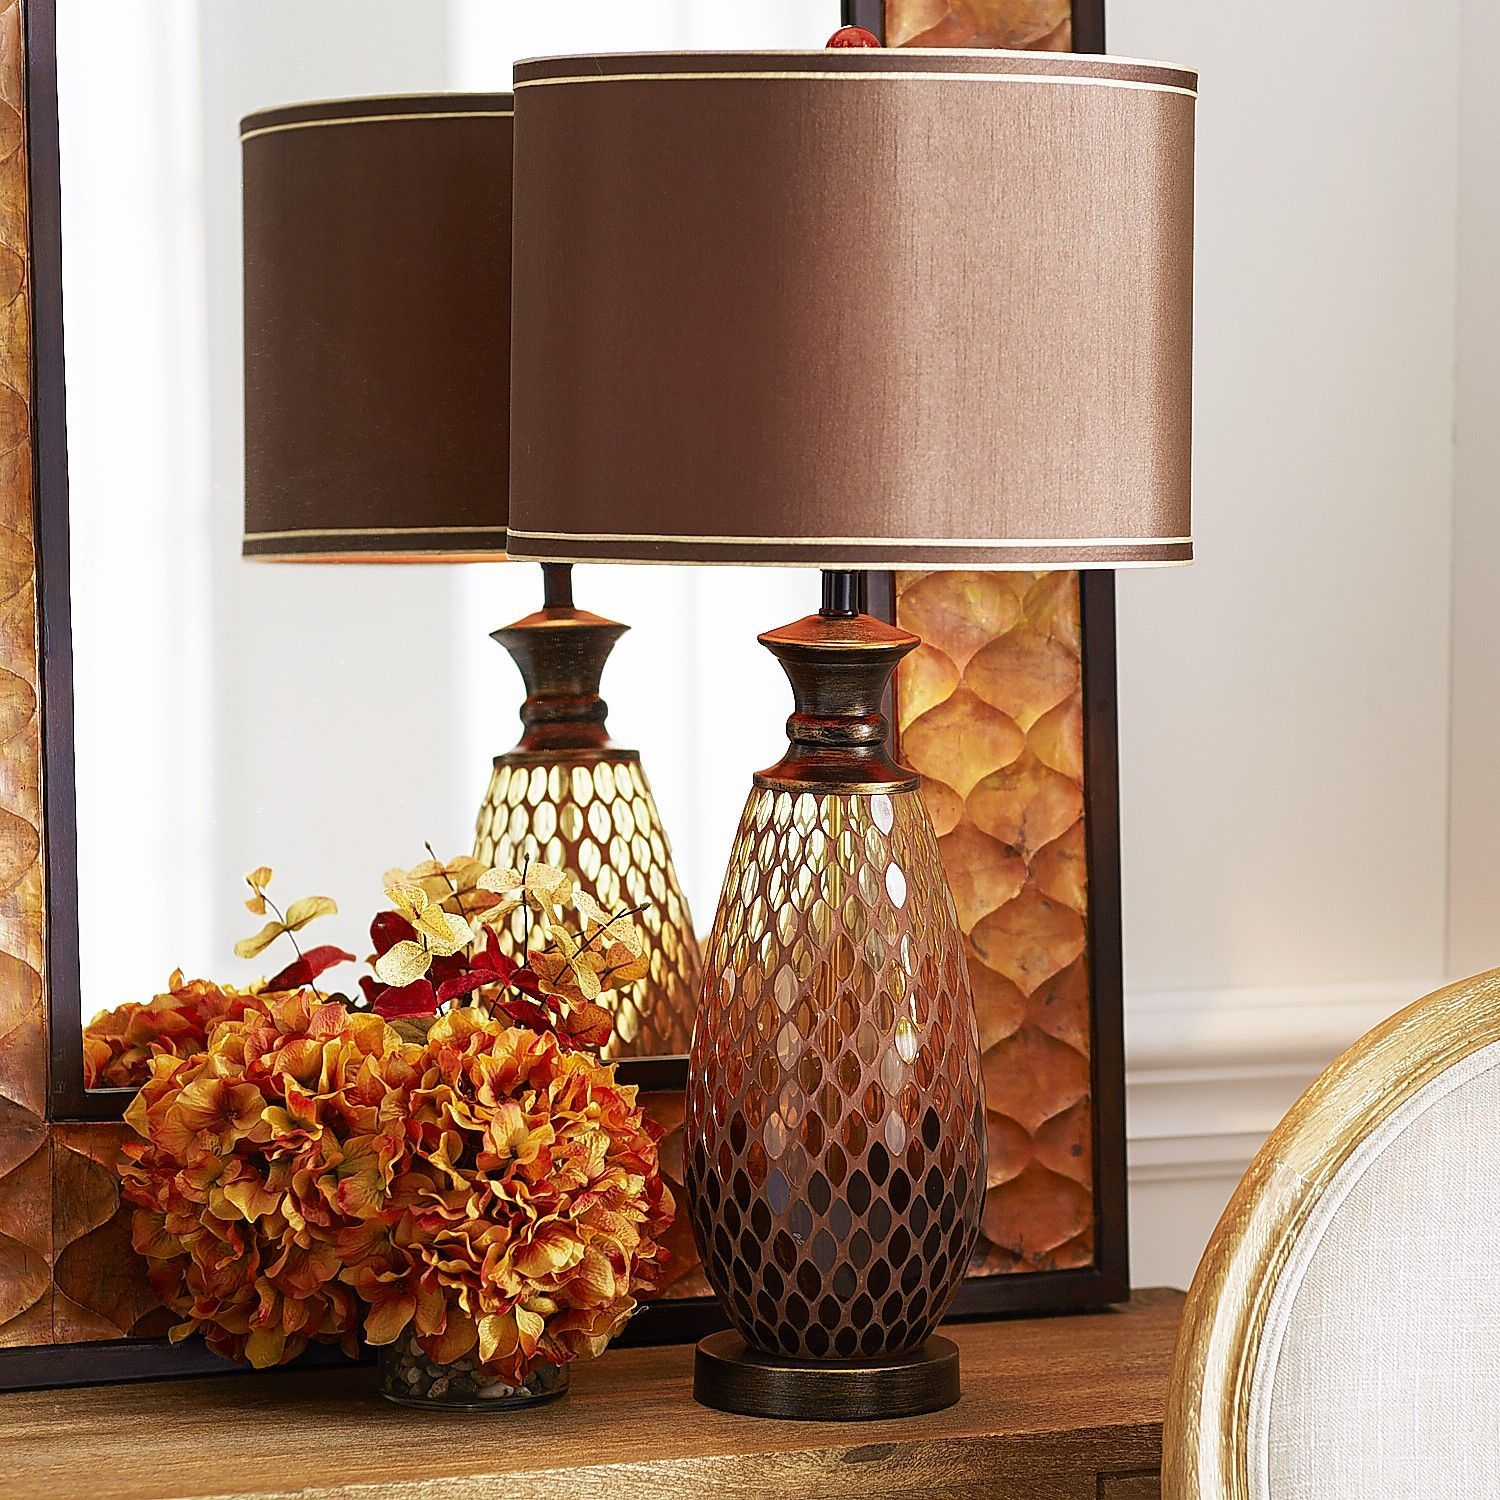 Opus Sunset Lamp Pier 1 Imports Lamp Table Lamp Family Room